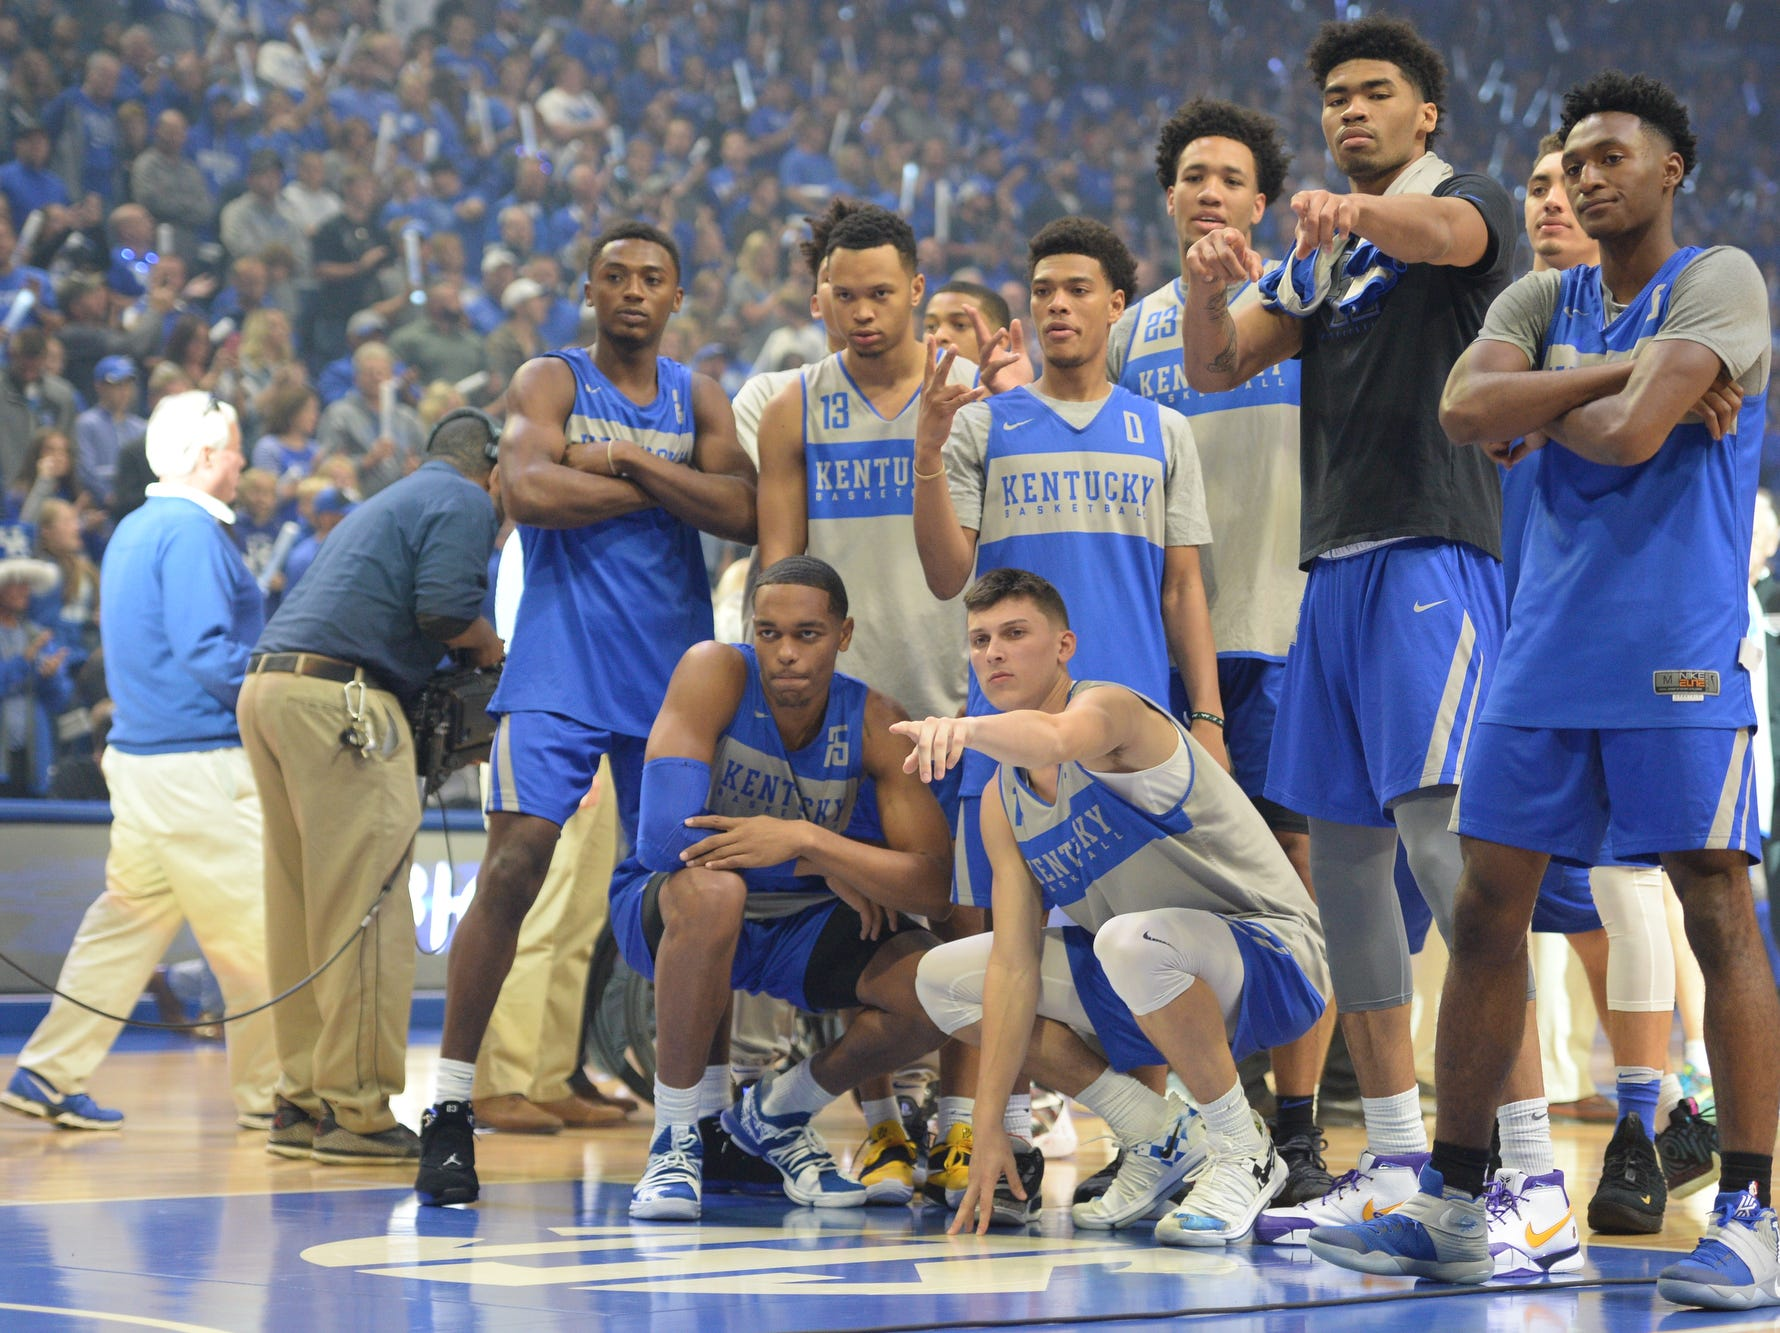 A group of players during the University of Kentucky basketball's annual Big Blue Madness at Rupp Arena in Lexington, Kentucky on Friday, Oct. 12, 2018.